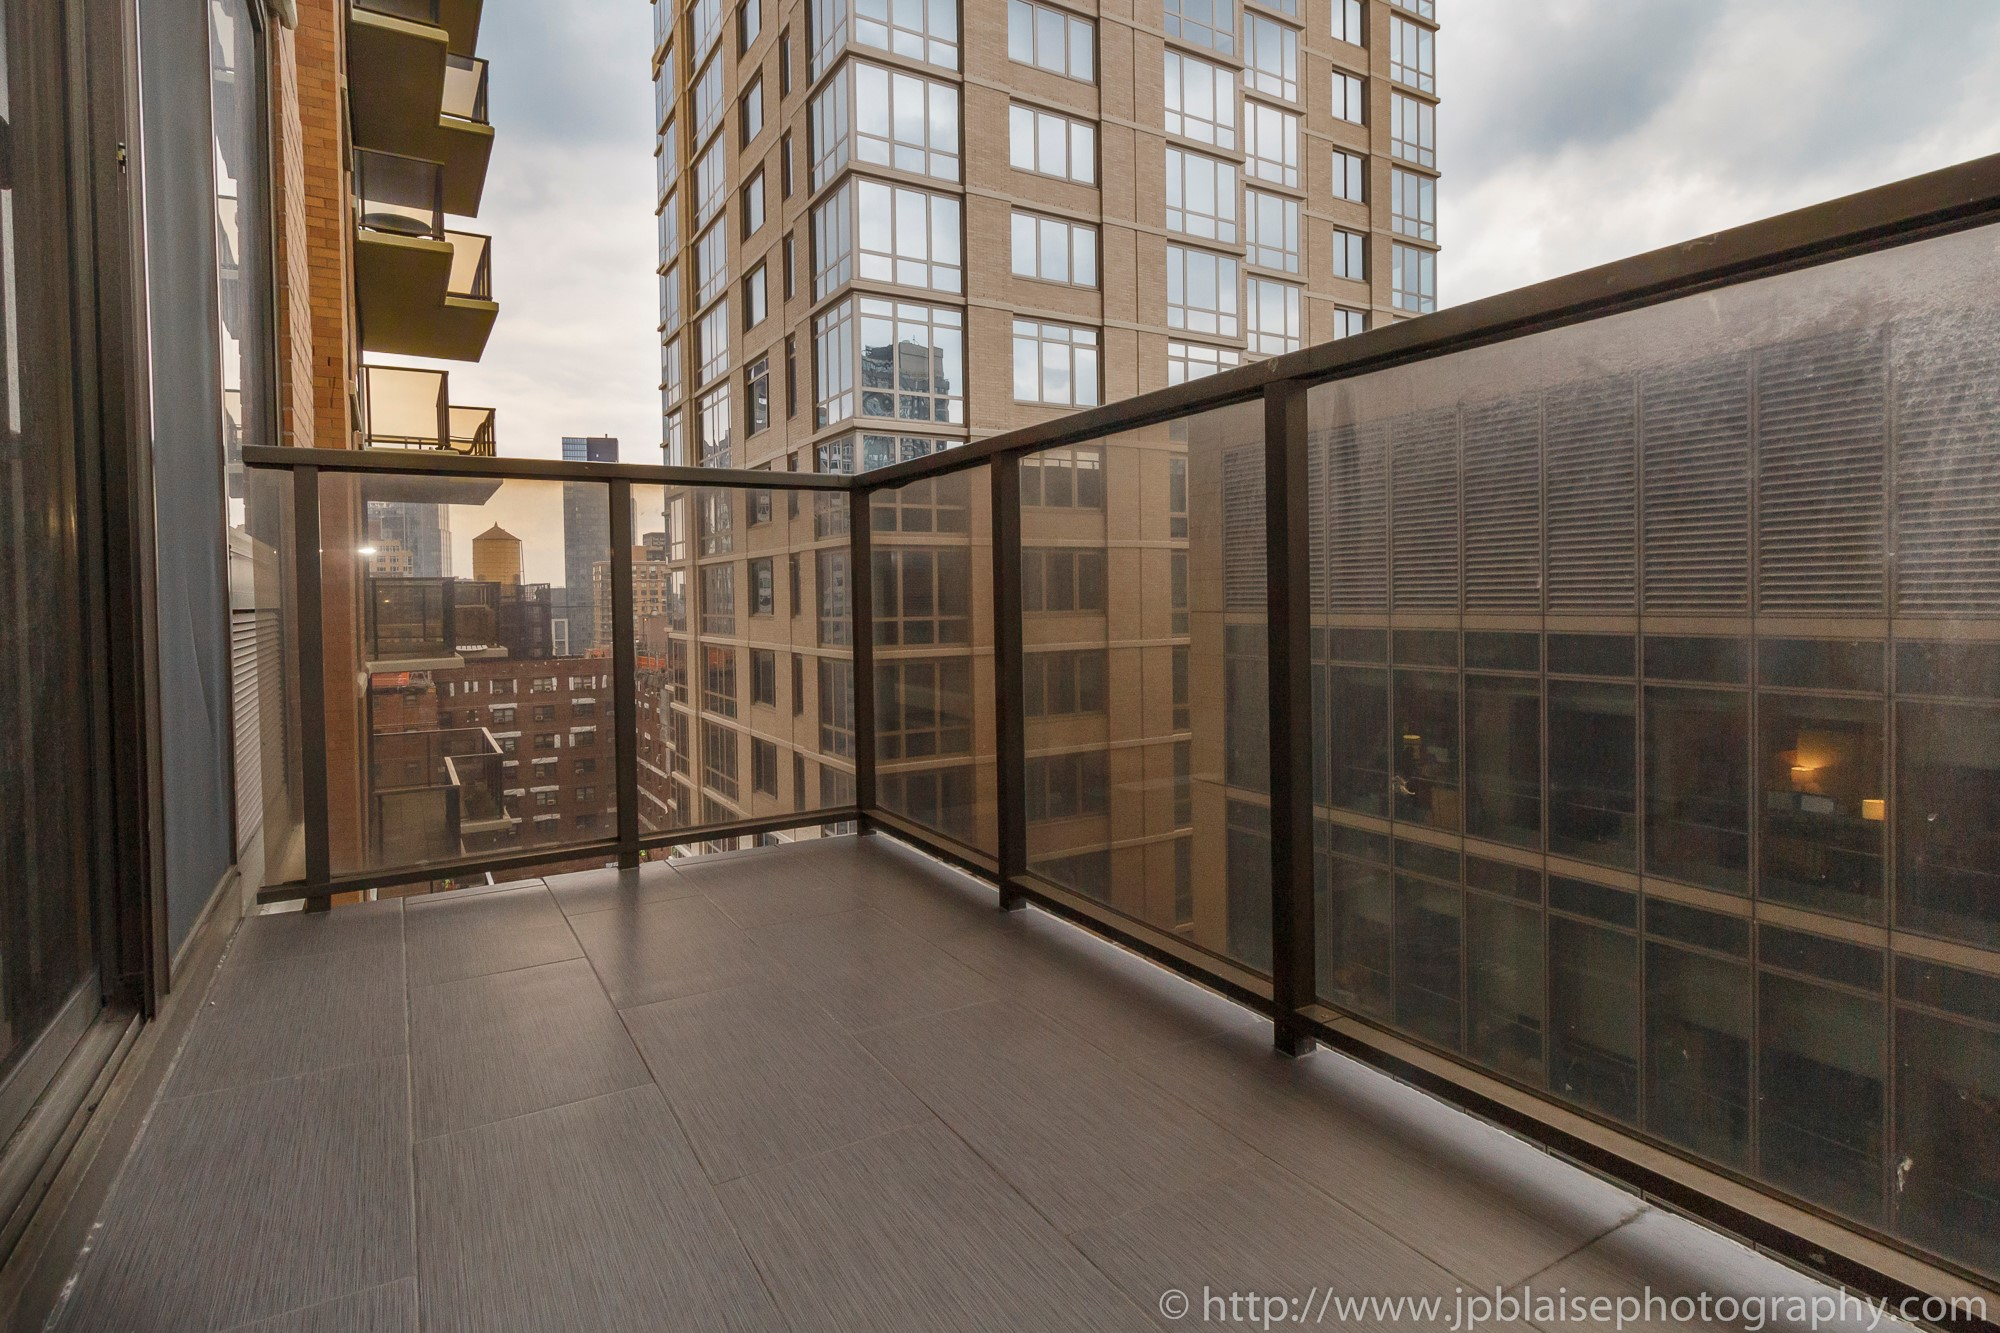 Real estate apartment photographer upper east side new york city one bedroom balcony